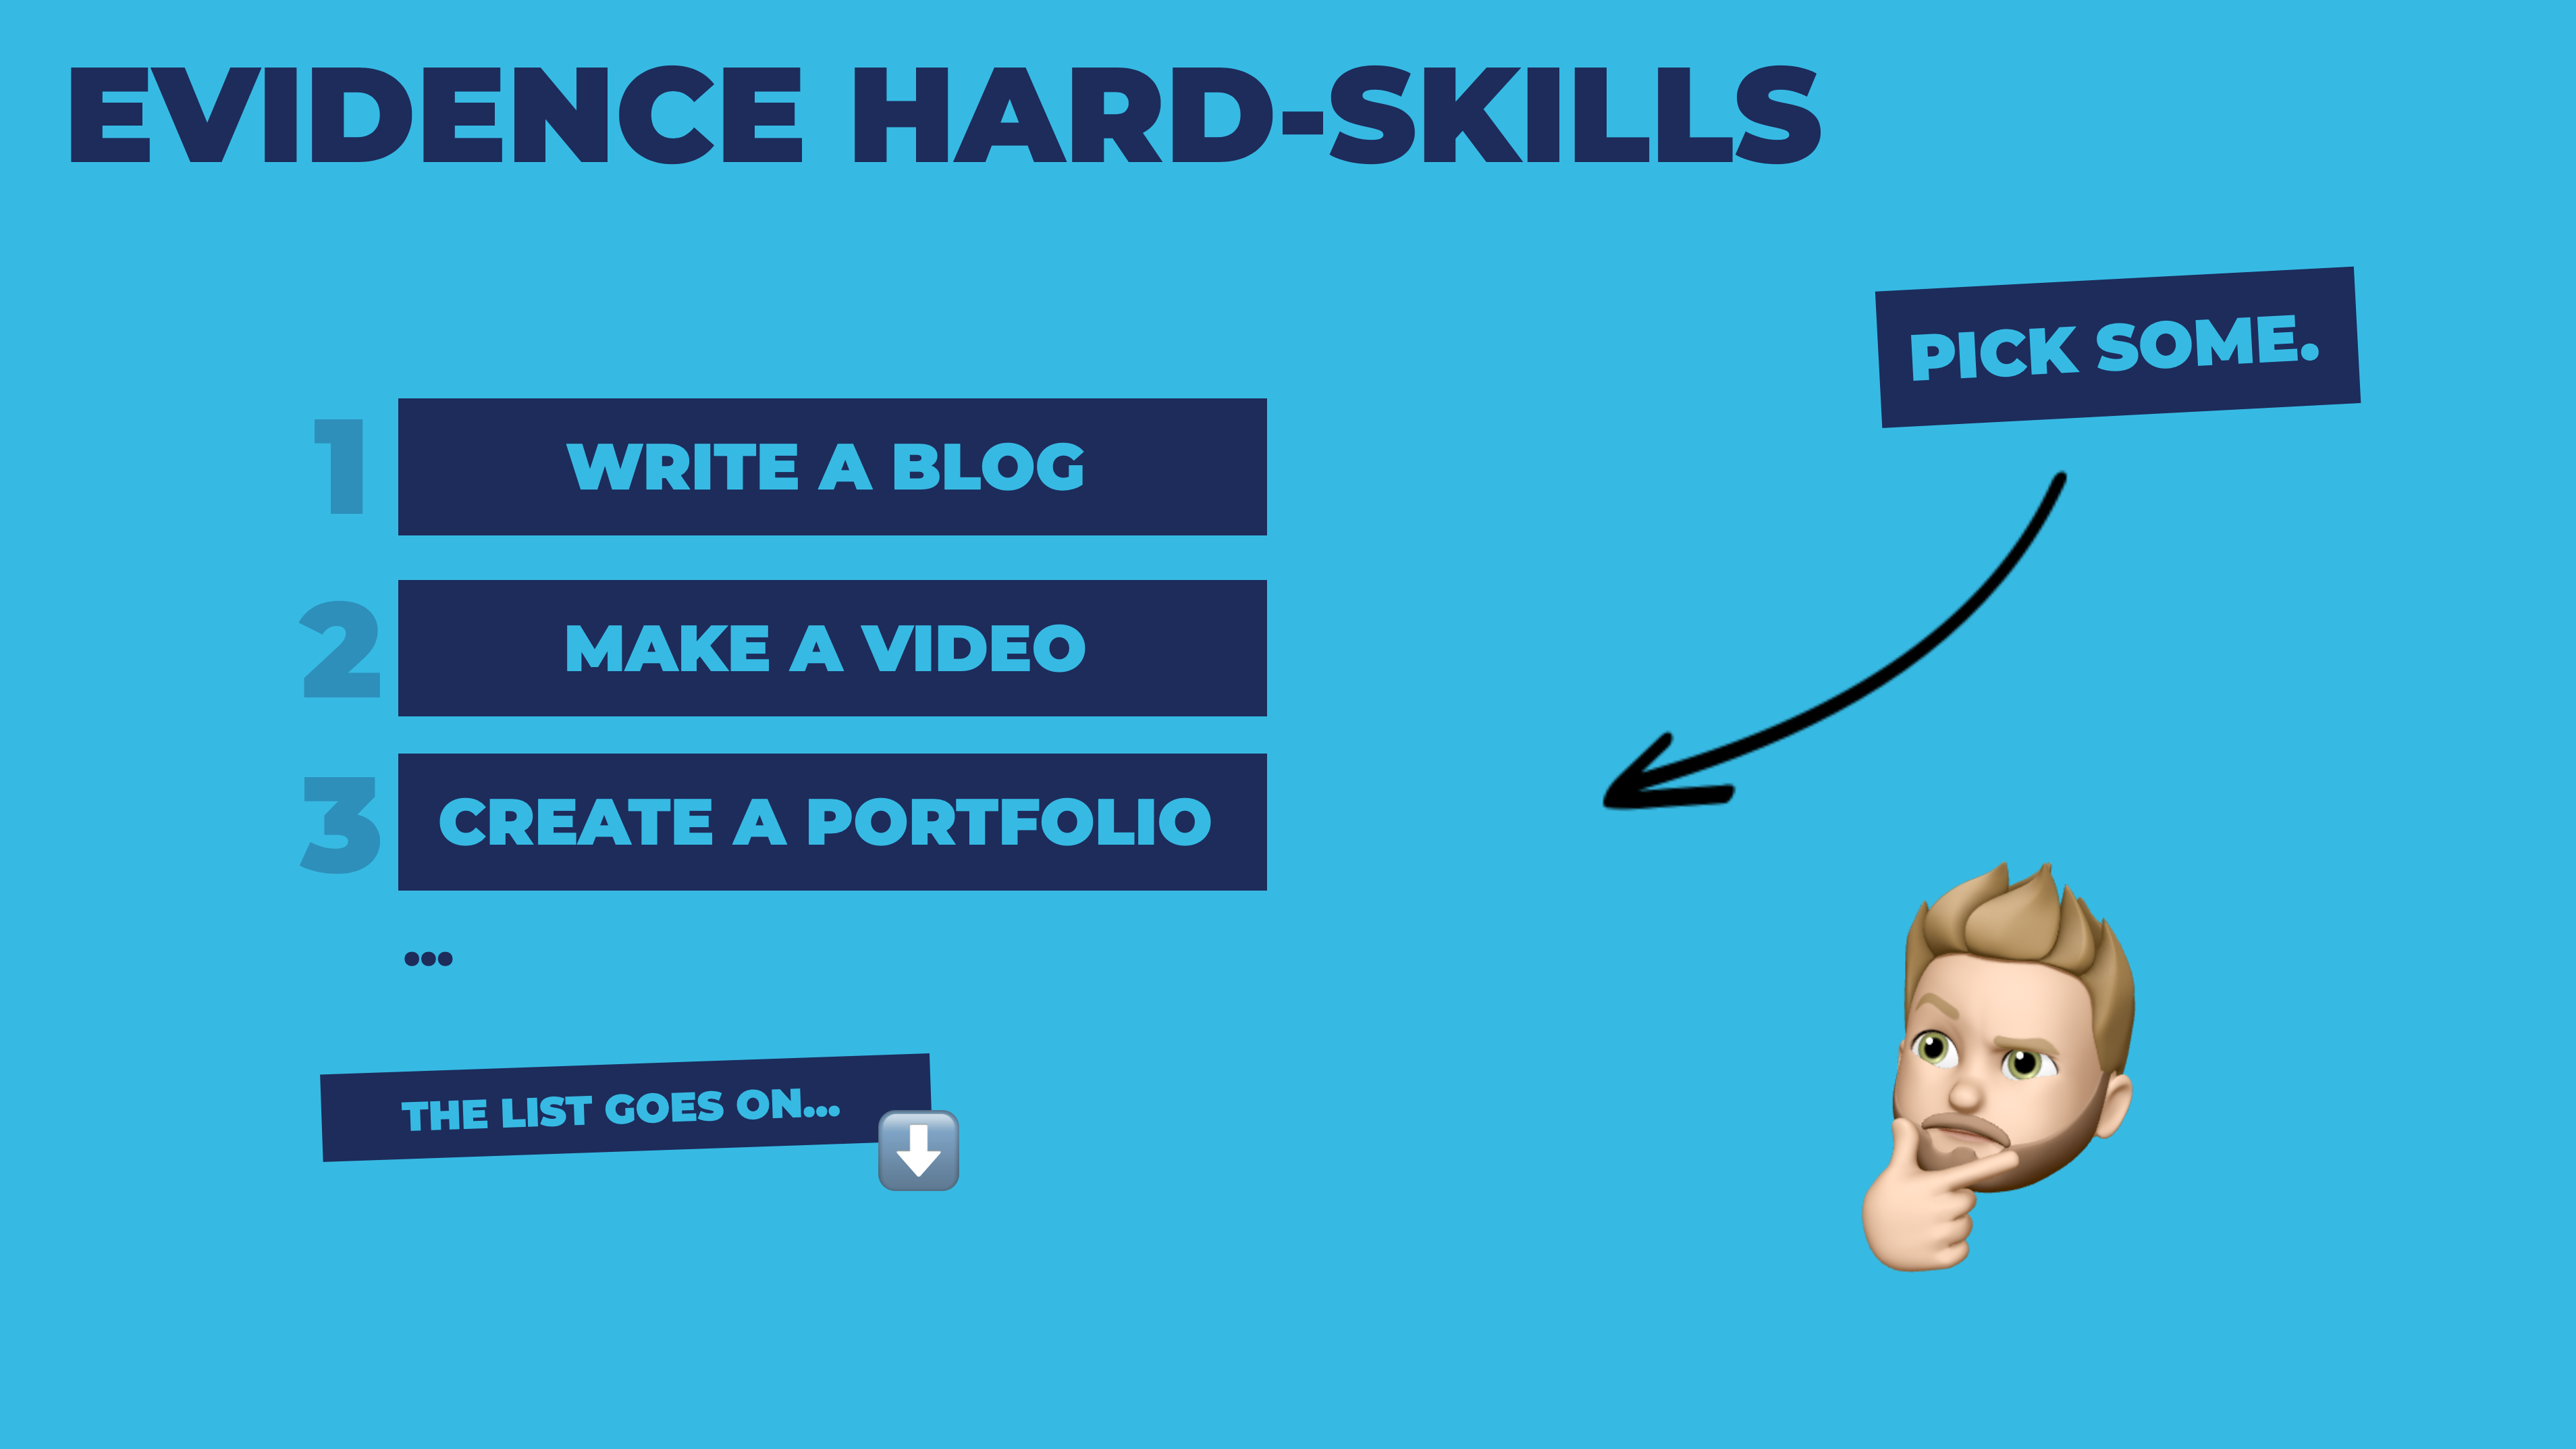 Evidence hard skills, such as writing a blog, making a video, or creating a portfolio